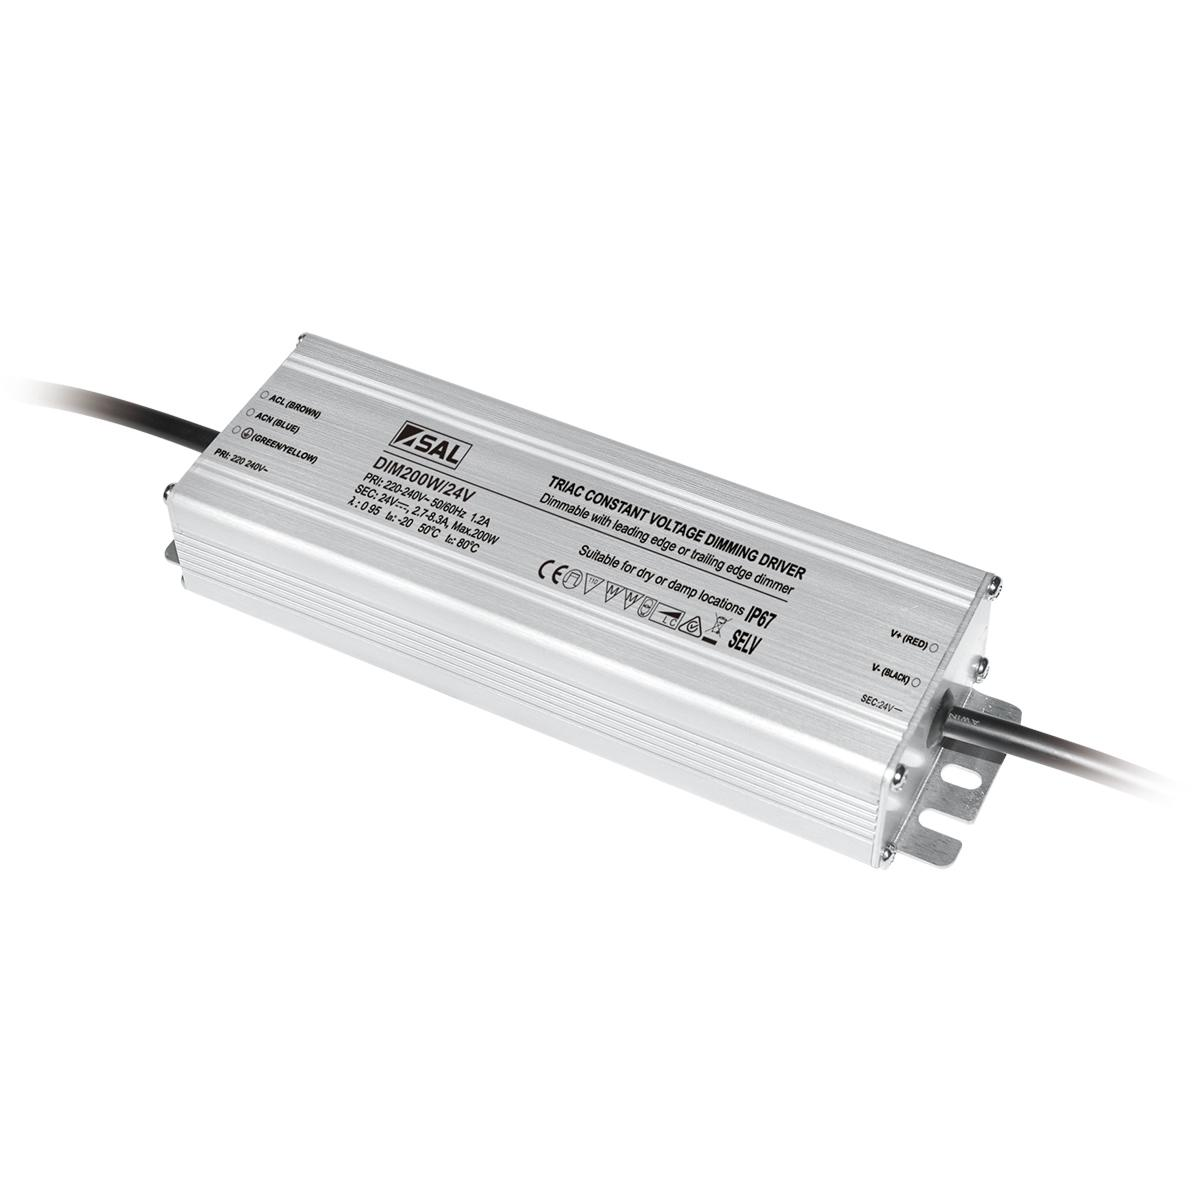 10watts Dc 12volt Waterproof Driver For Garden Lights Pool Light Etc Triac Based Lamp Dimmer